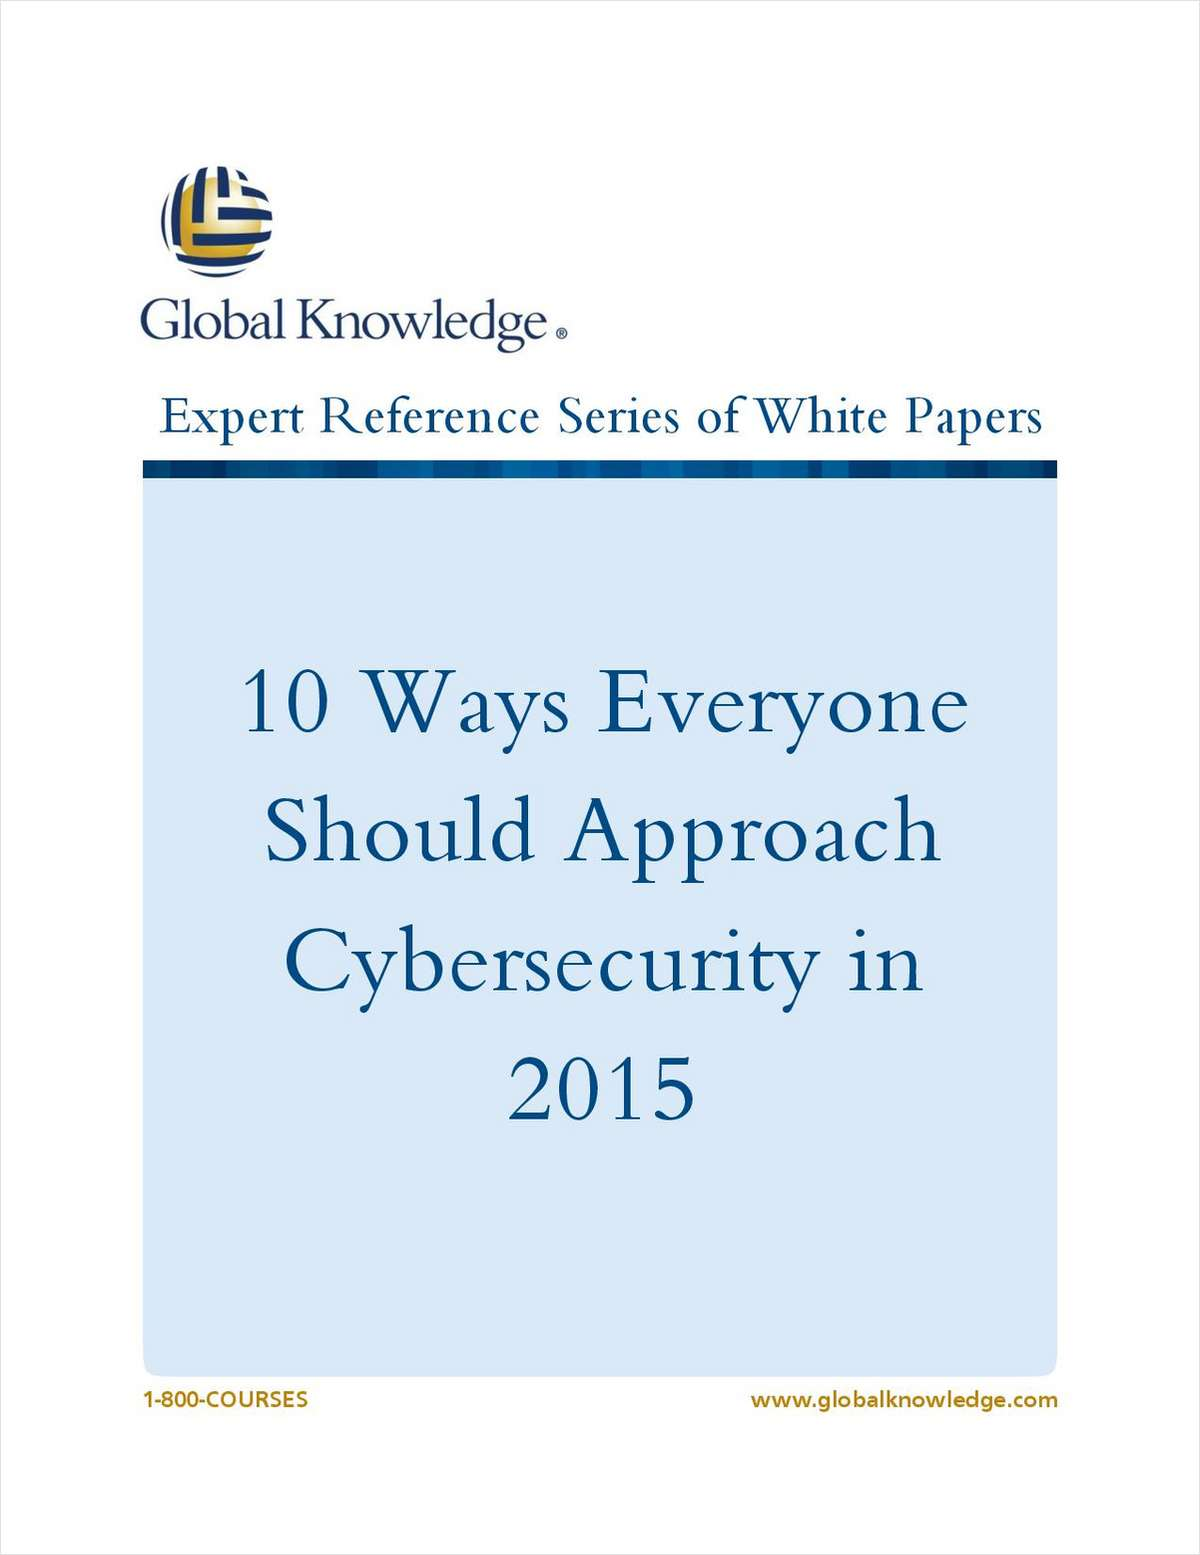 10 Ways Everyone Should Approach Cybersecurity in 2015